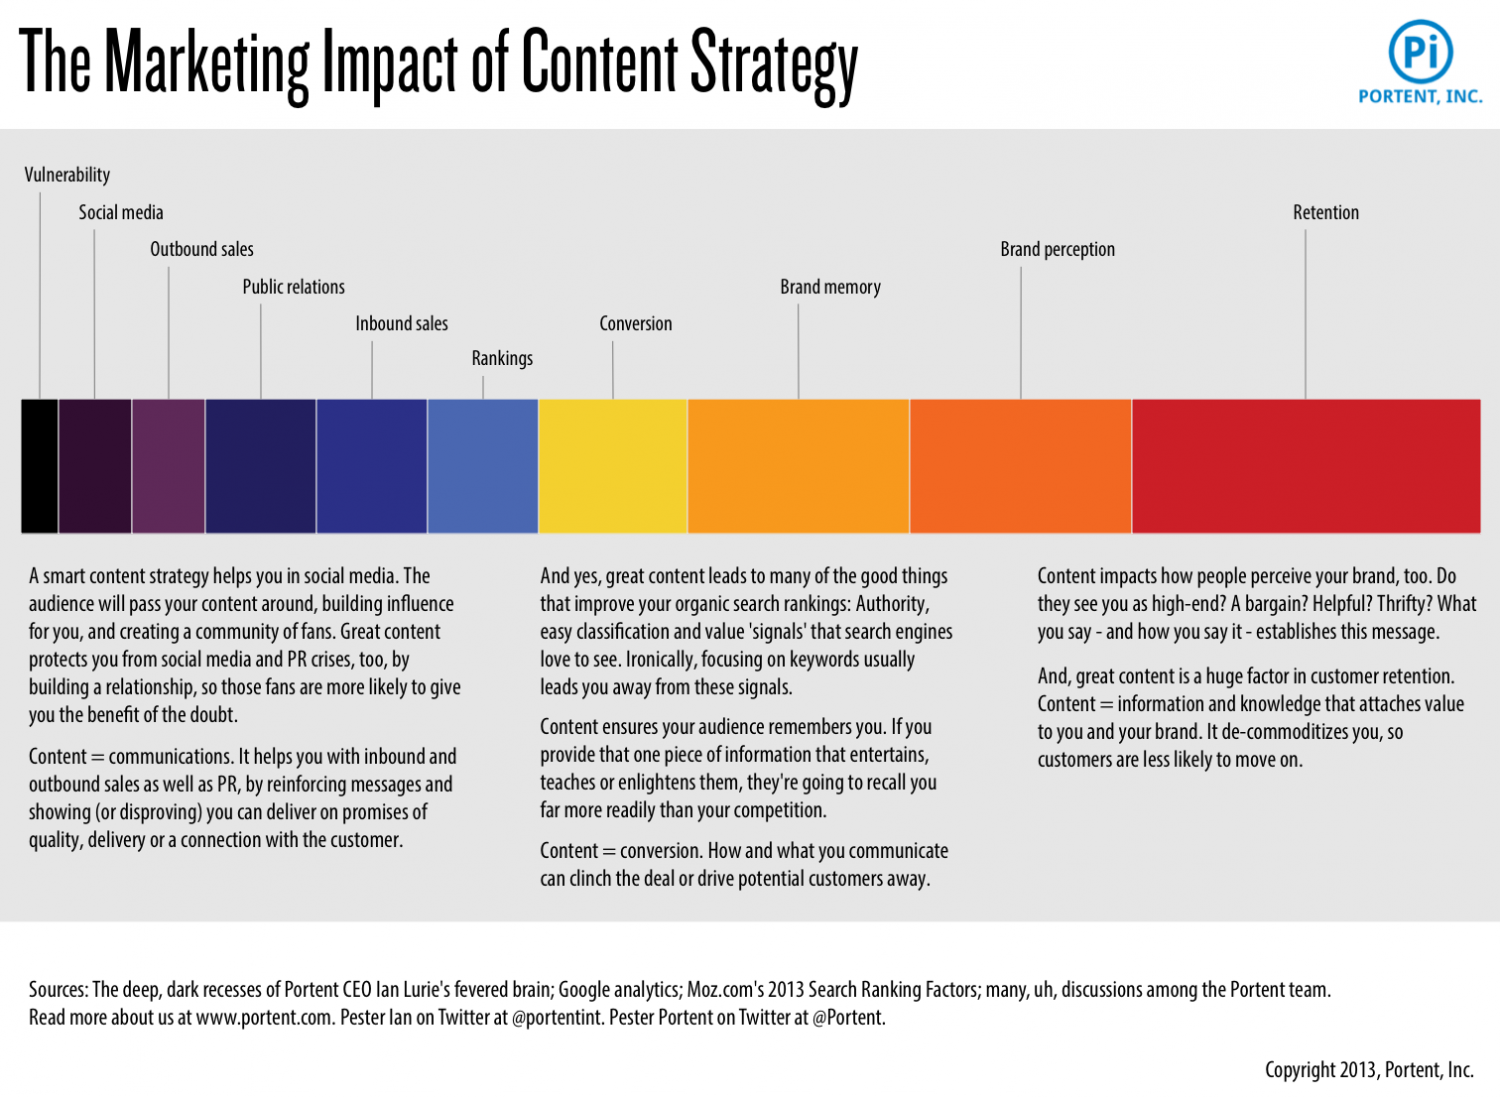 The Marketing Impact of Content Strategy Infographic